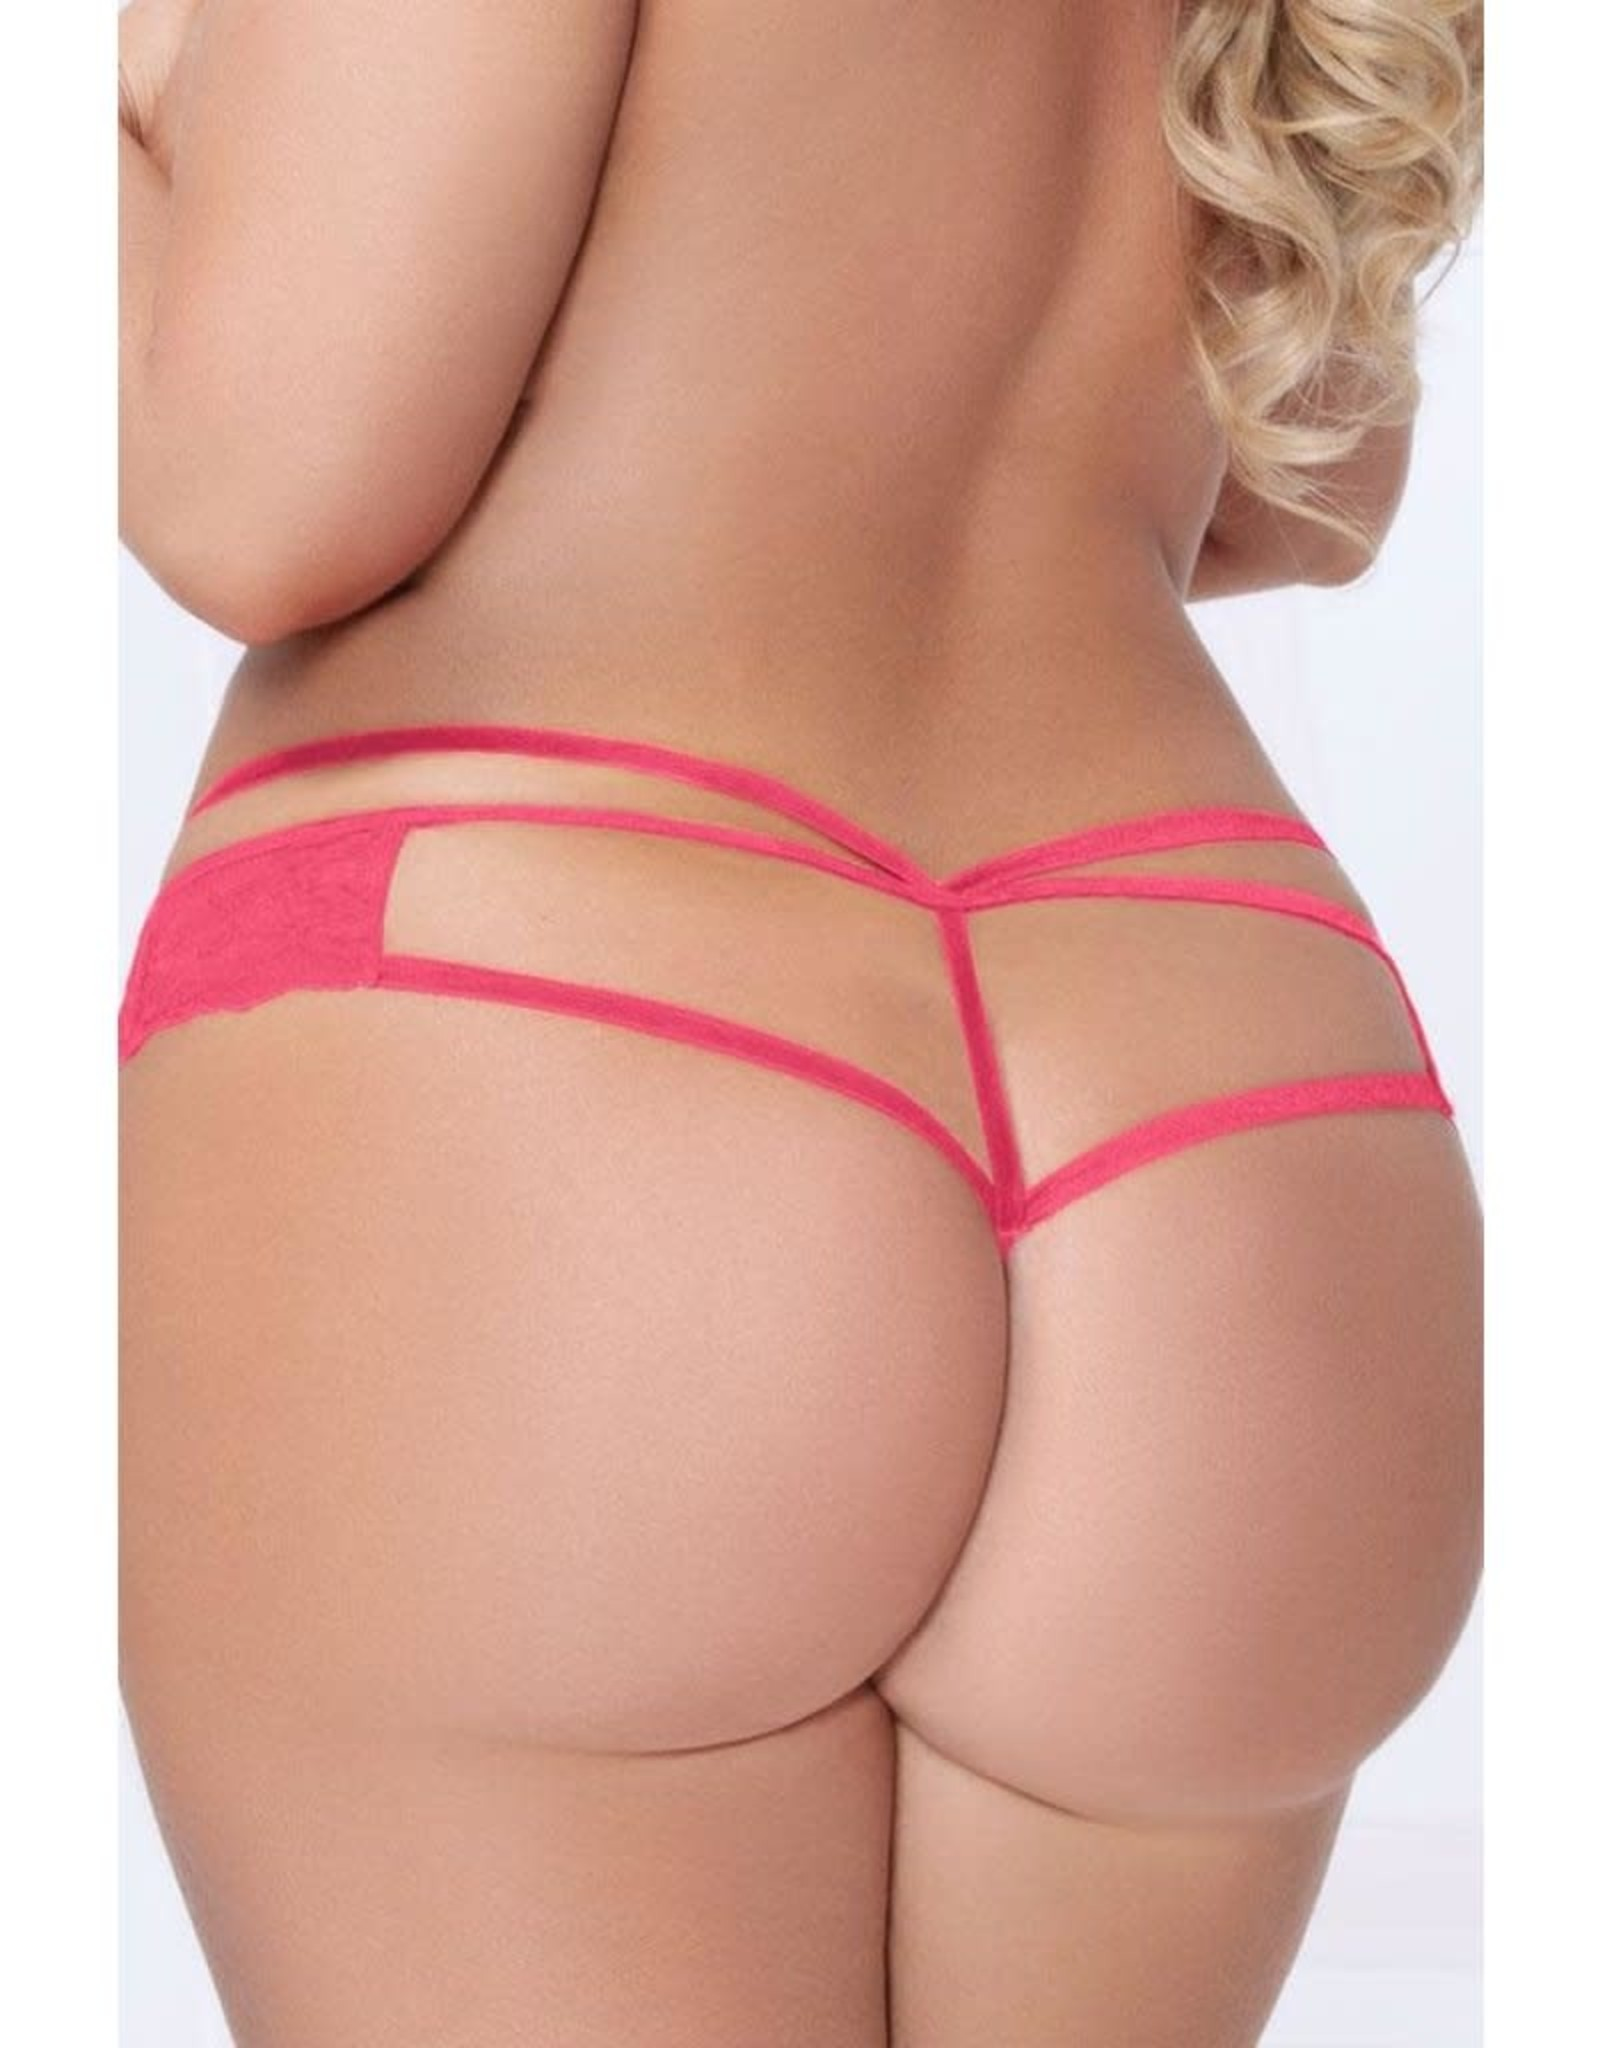 DRIVE ME CRAZY CORAL LACE THONG - M